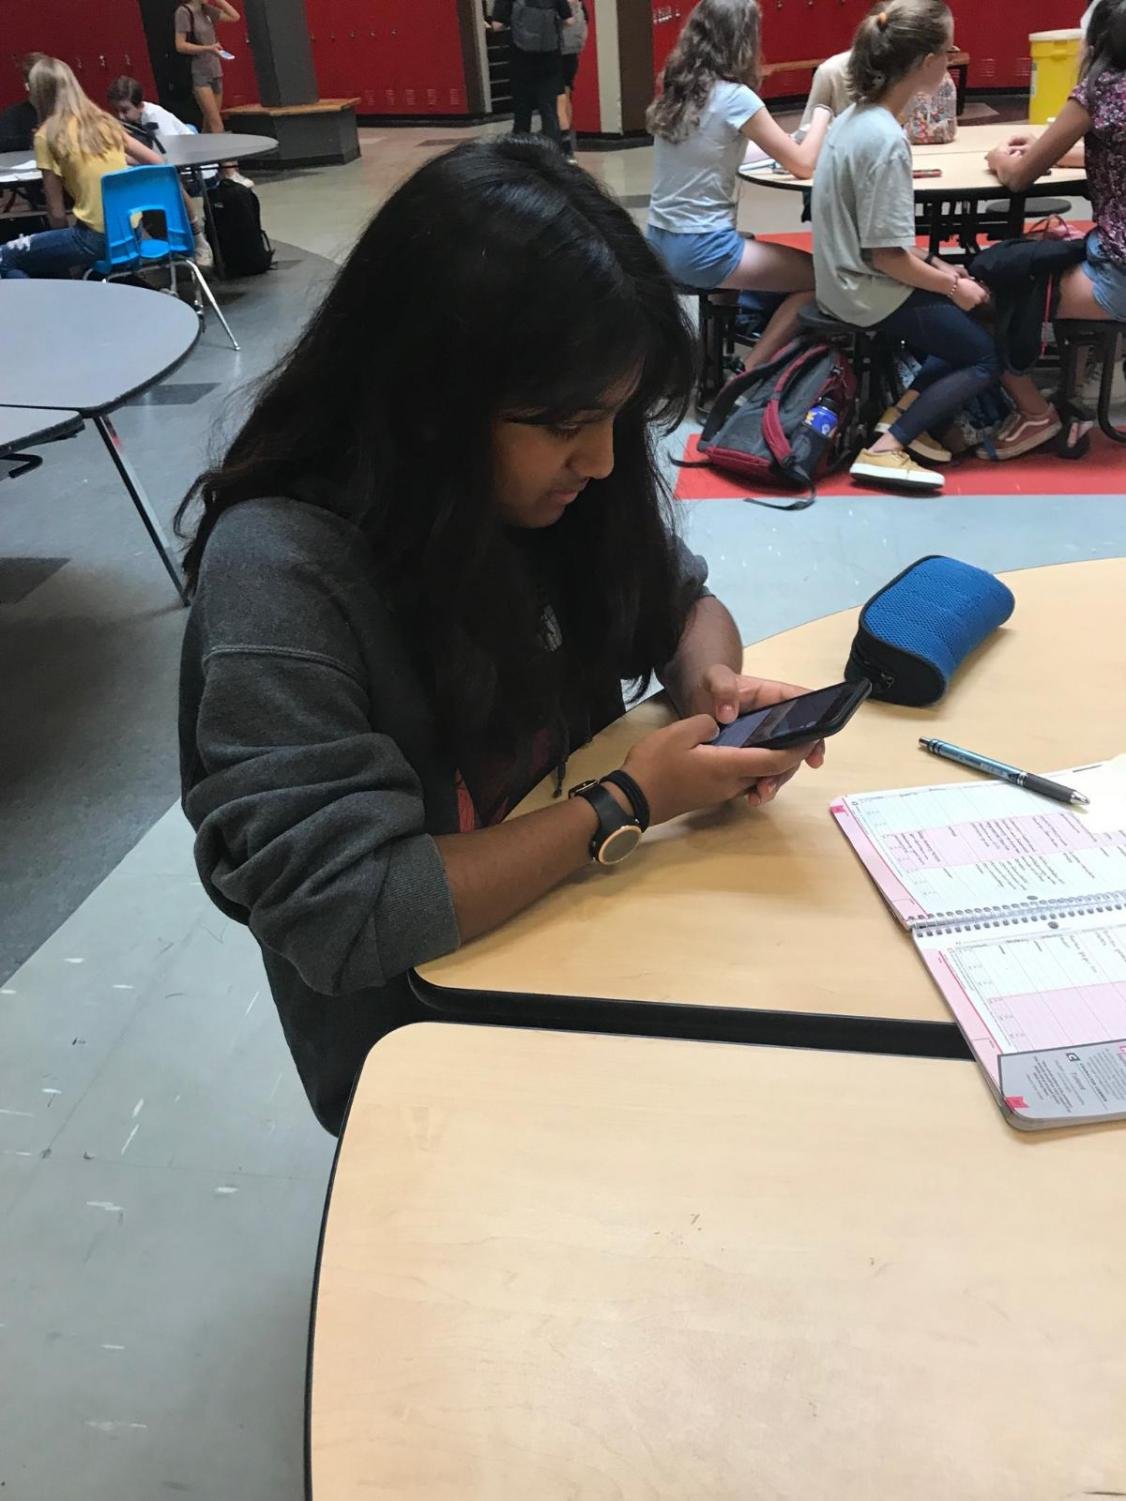 Hyumi Wijesakara looking at her phone during CAT time in the Student Center.